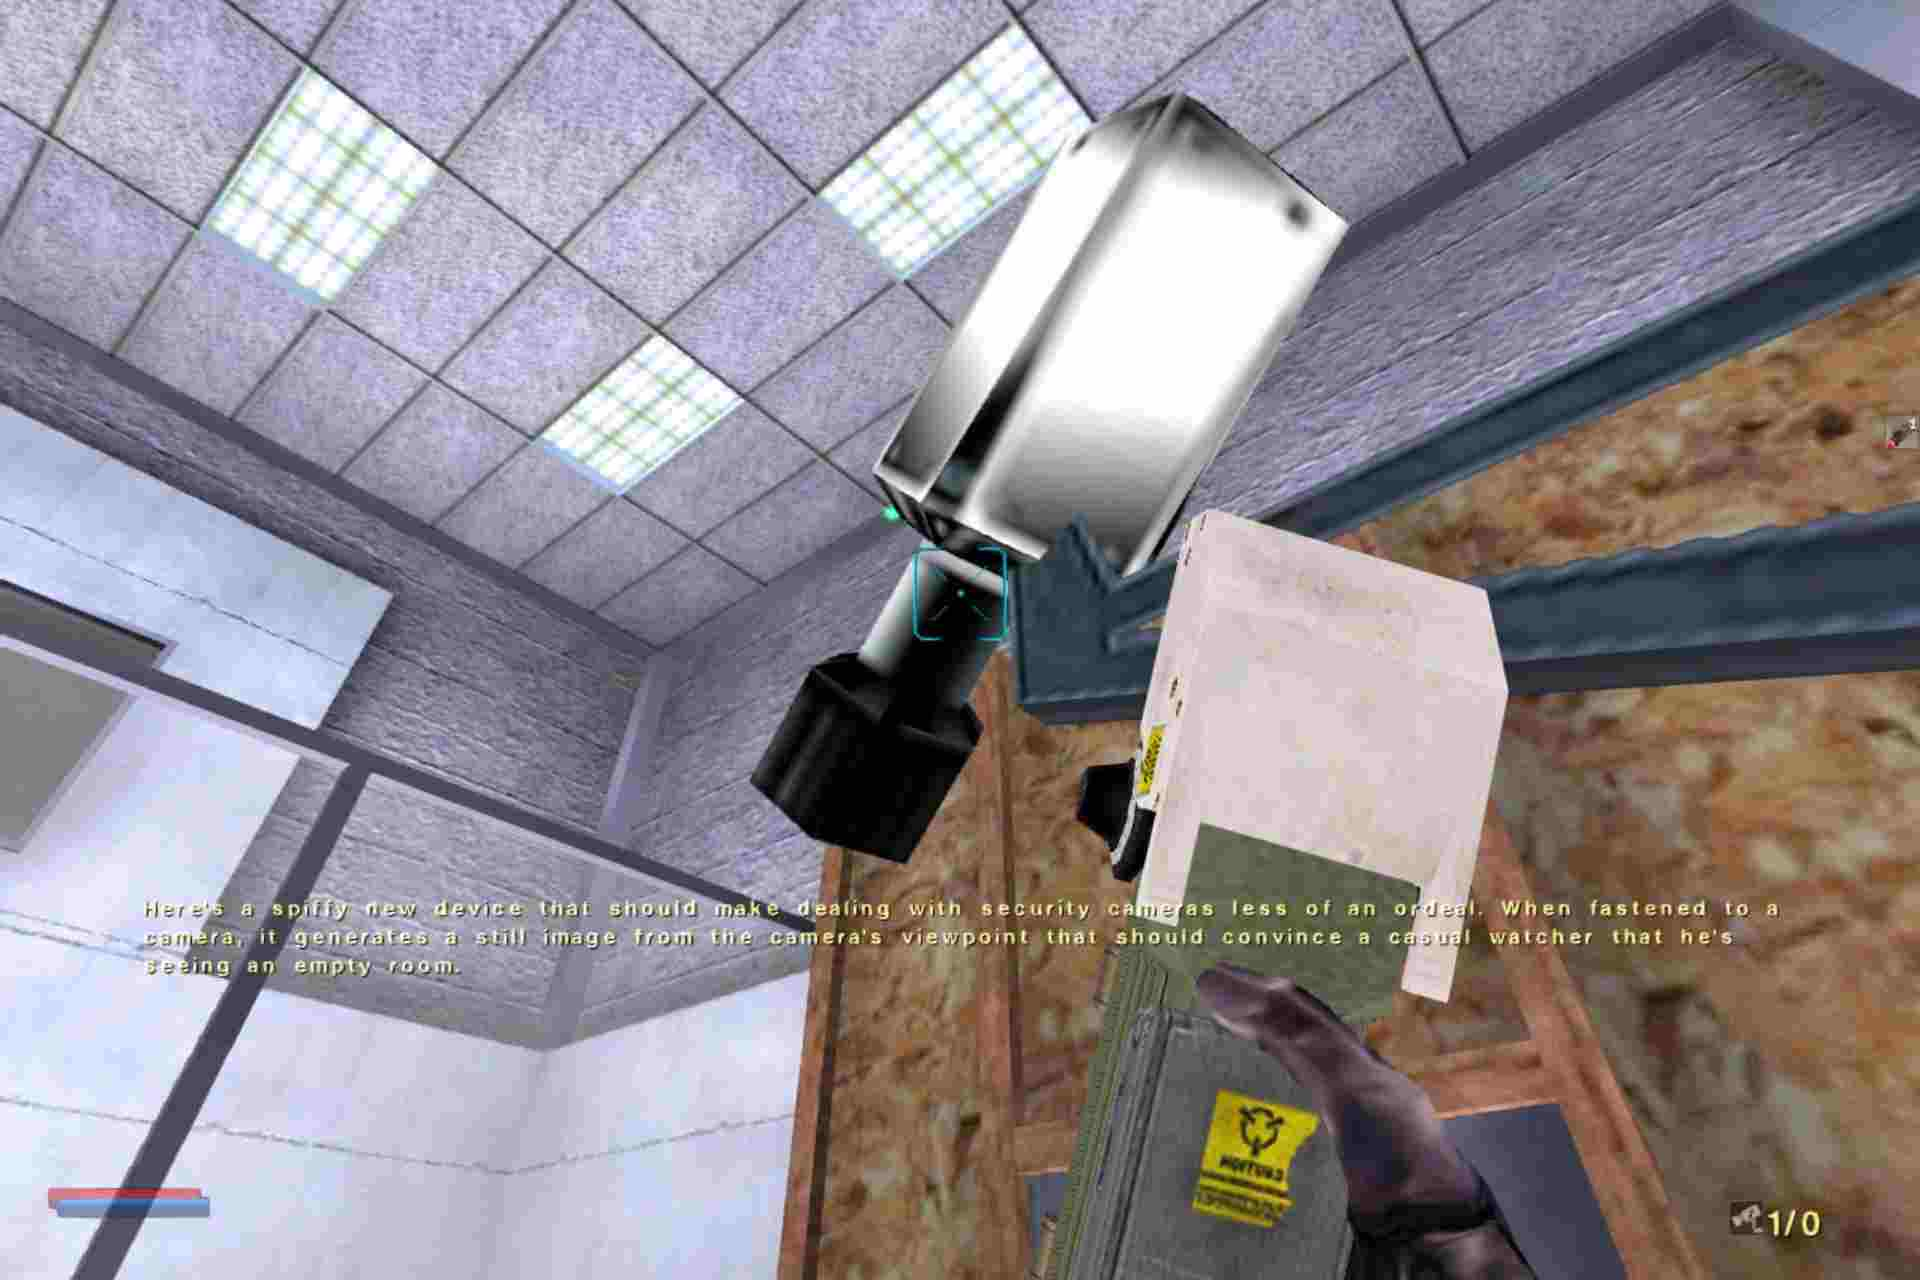 Camera Disabler is a gadget used in NOLF to disable camera surveillance by enemy operatives.